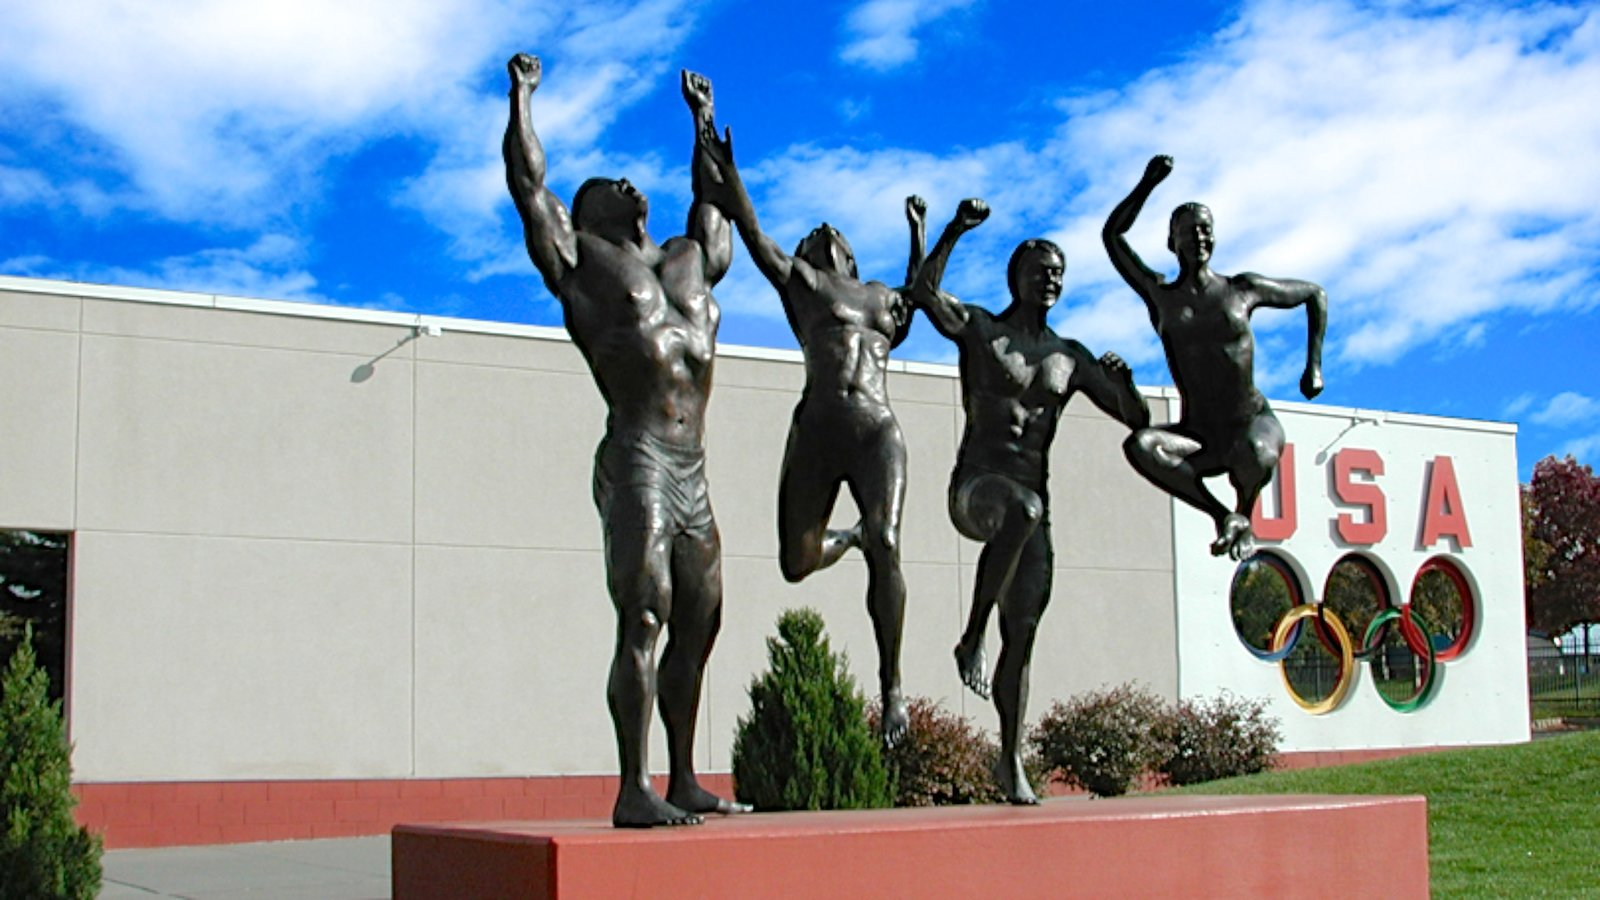 Art colorado springs - United States Olympic Complex Which Includes A Statue Or Sculpture And Outdoor Art